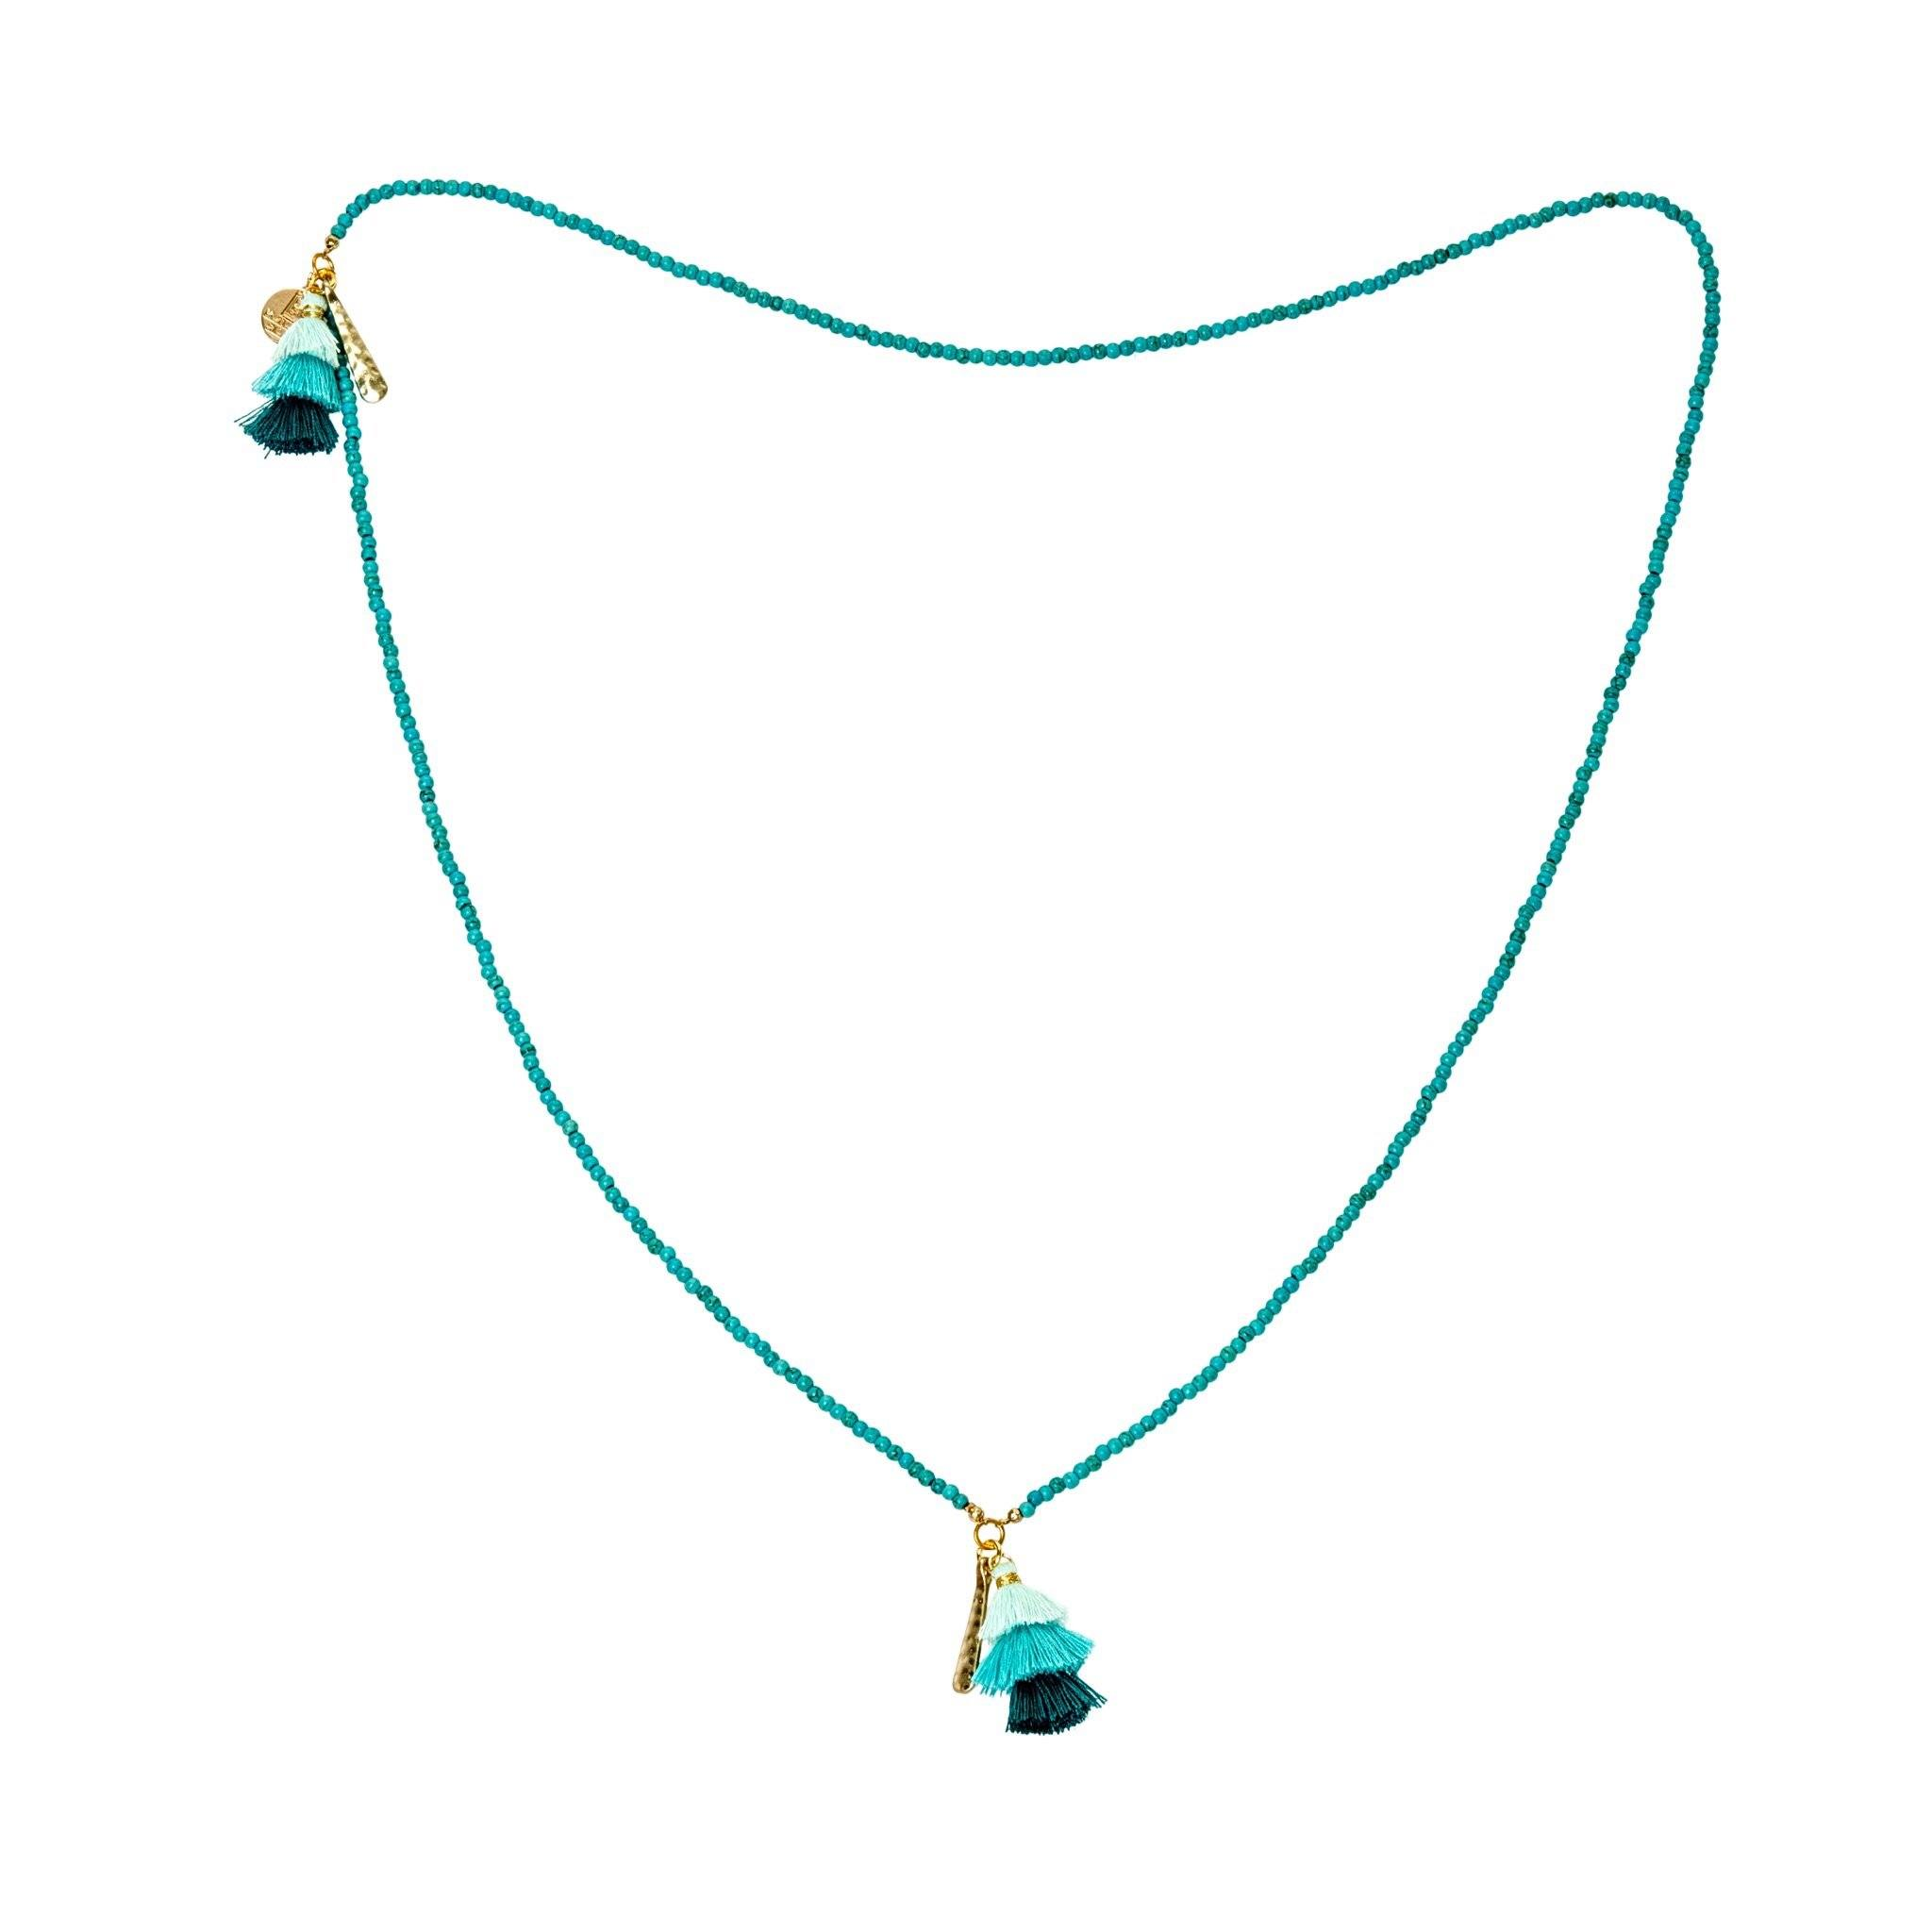 Praka turquoise necklace - MadamSiam